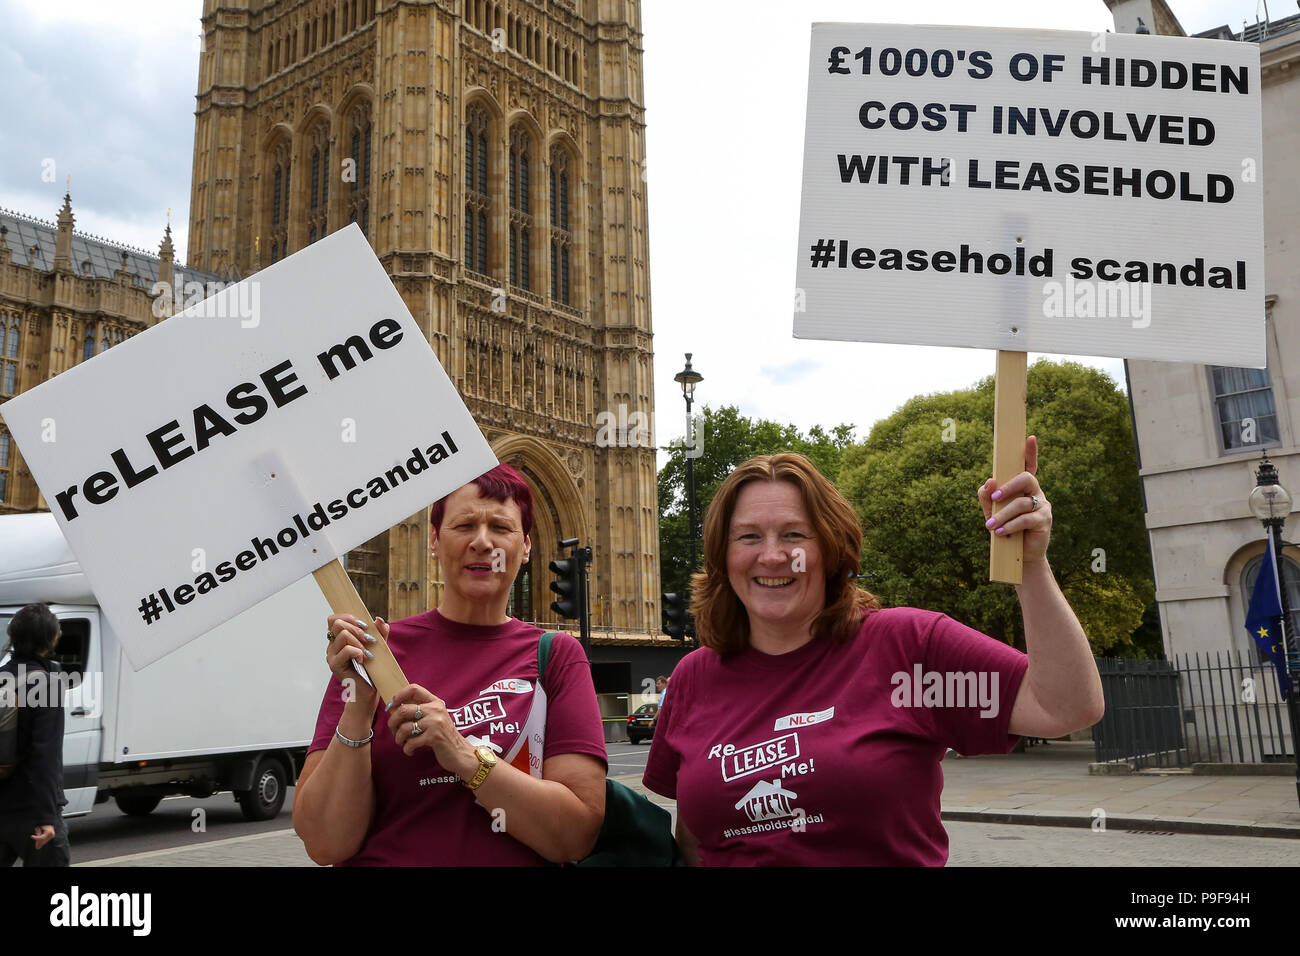 Westminster. London. UK. 18 July 2018 - Members of the National Leasehold Campaign (NLC) stage a protest opposite the Parliament over the scandal of property leaseholder rights which currently allow landlords to buy and sell property freeholds with little or no control over service charges or ground rent.   Credit: Dinendra Haria/Alamy Live News - Stock Image